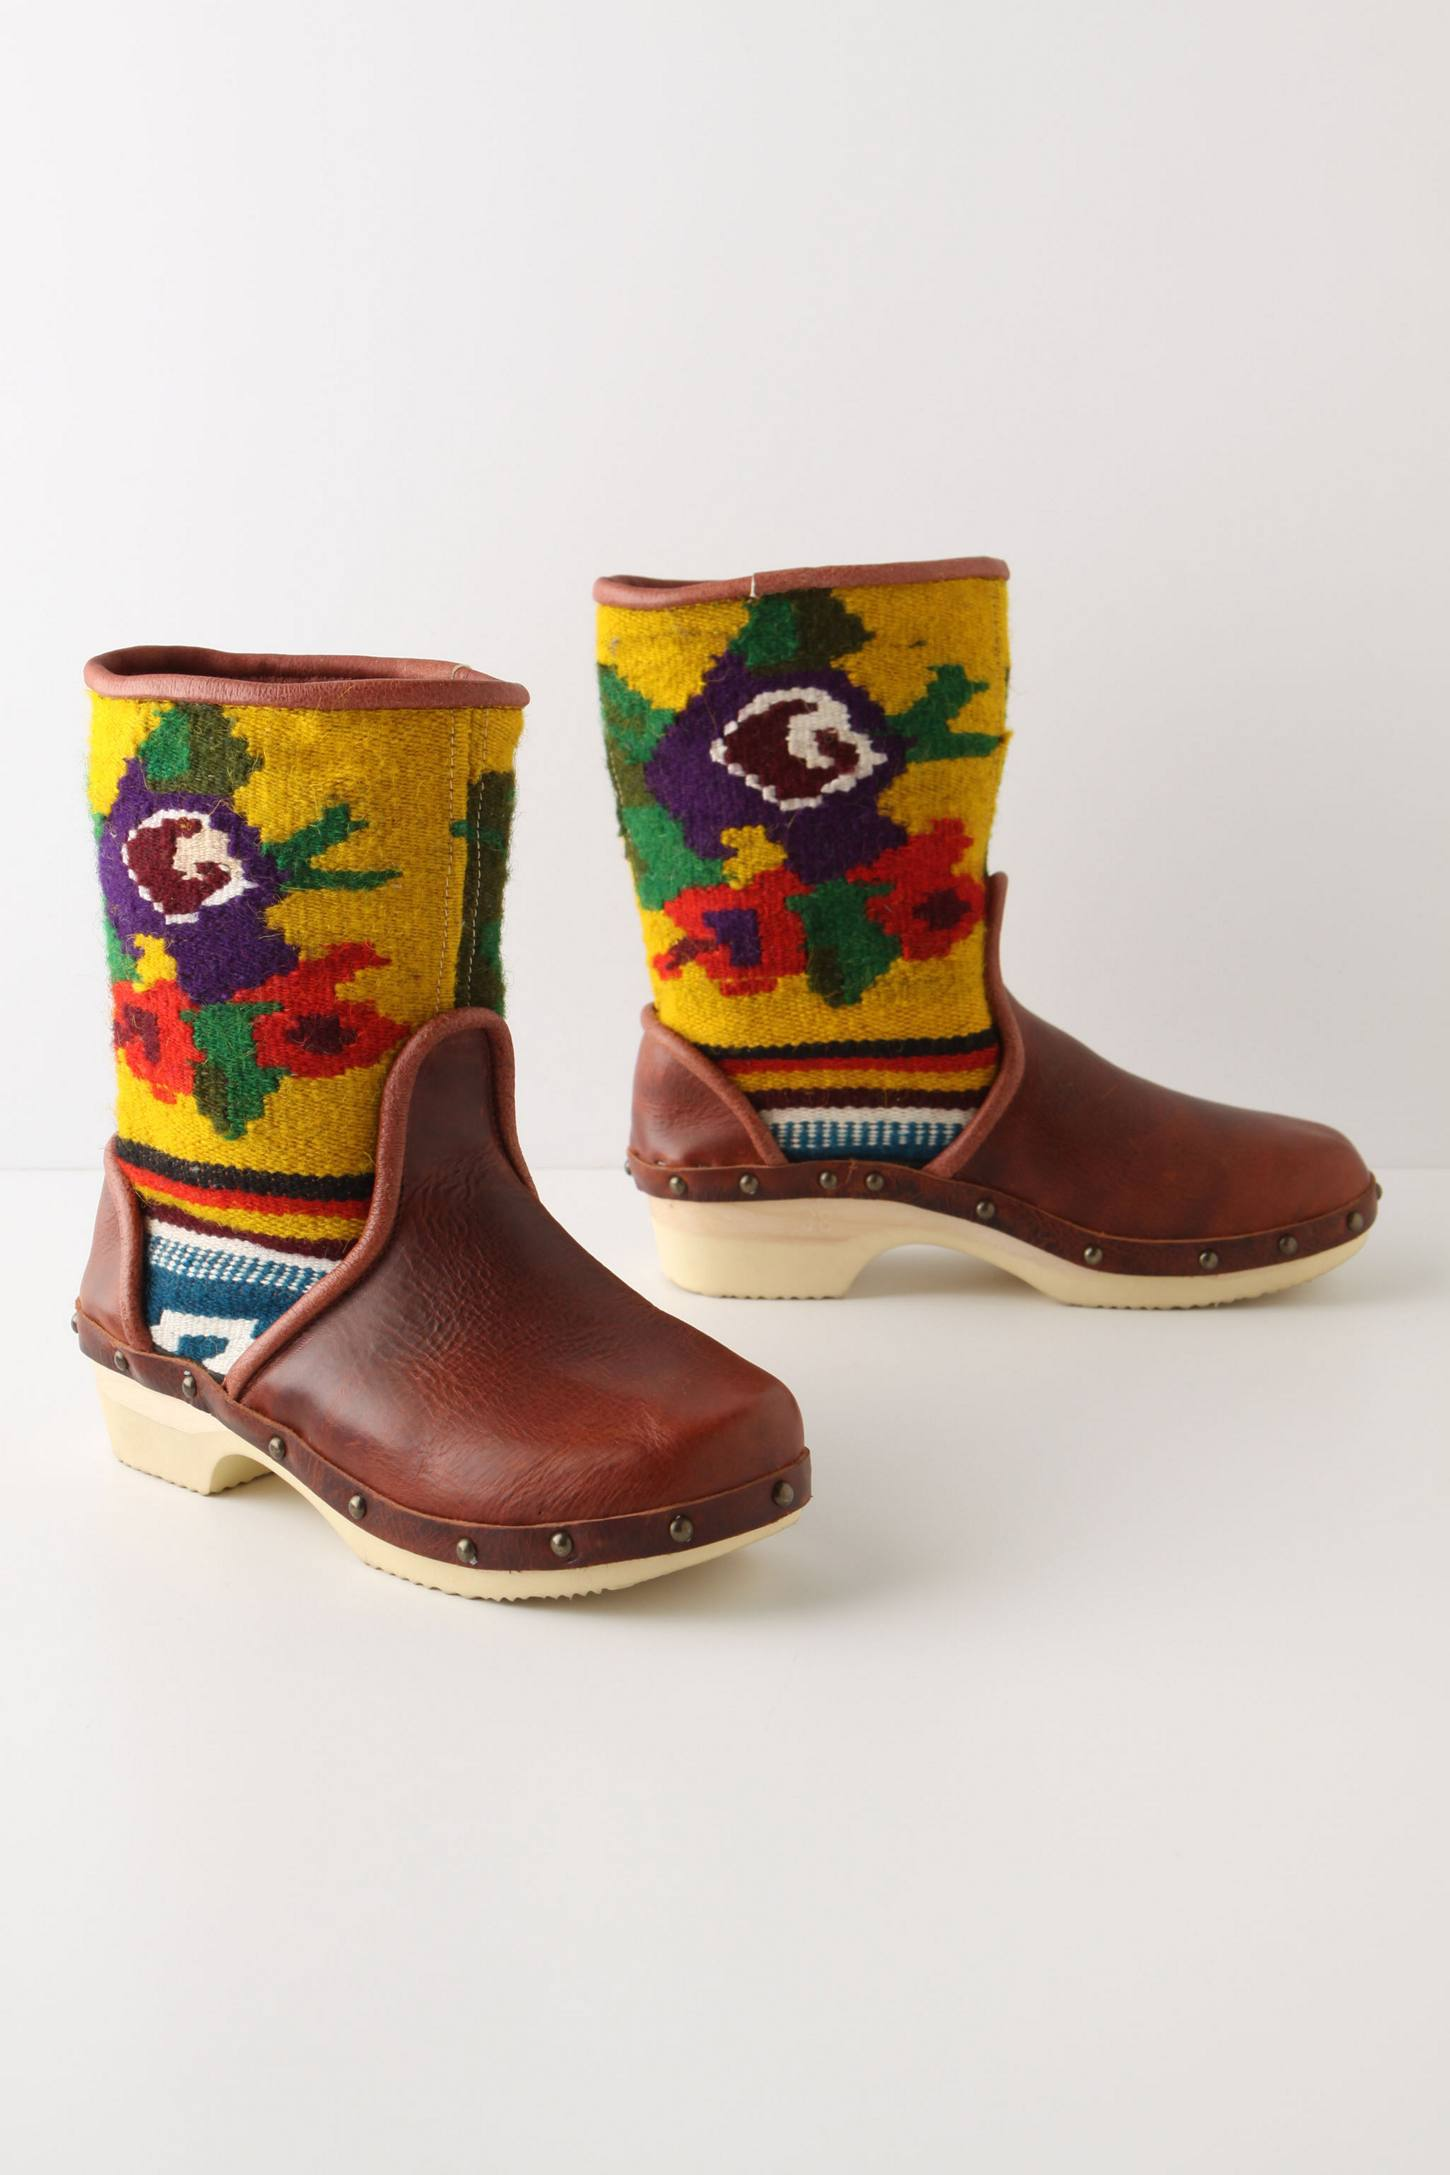 Vintage tapestry boots with yellow purple and green and red leg parts and brown toe